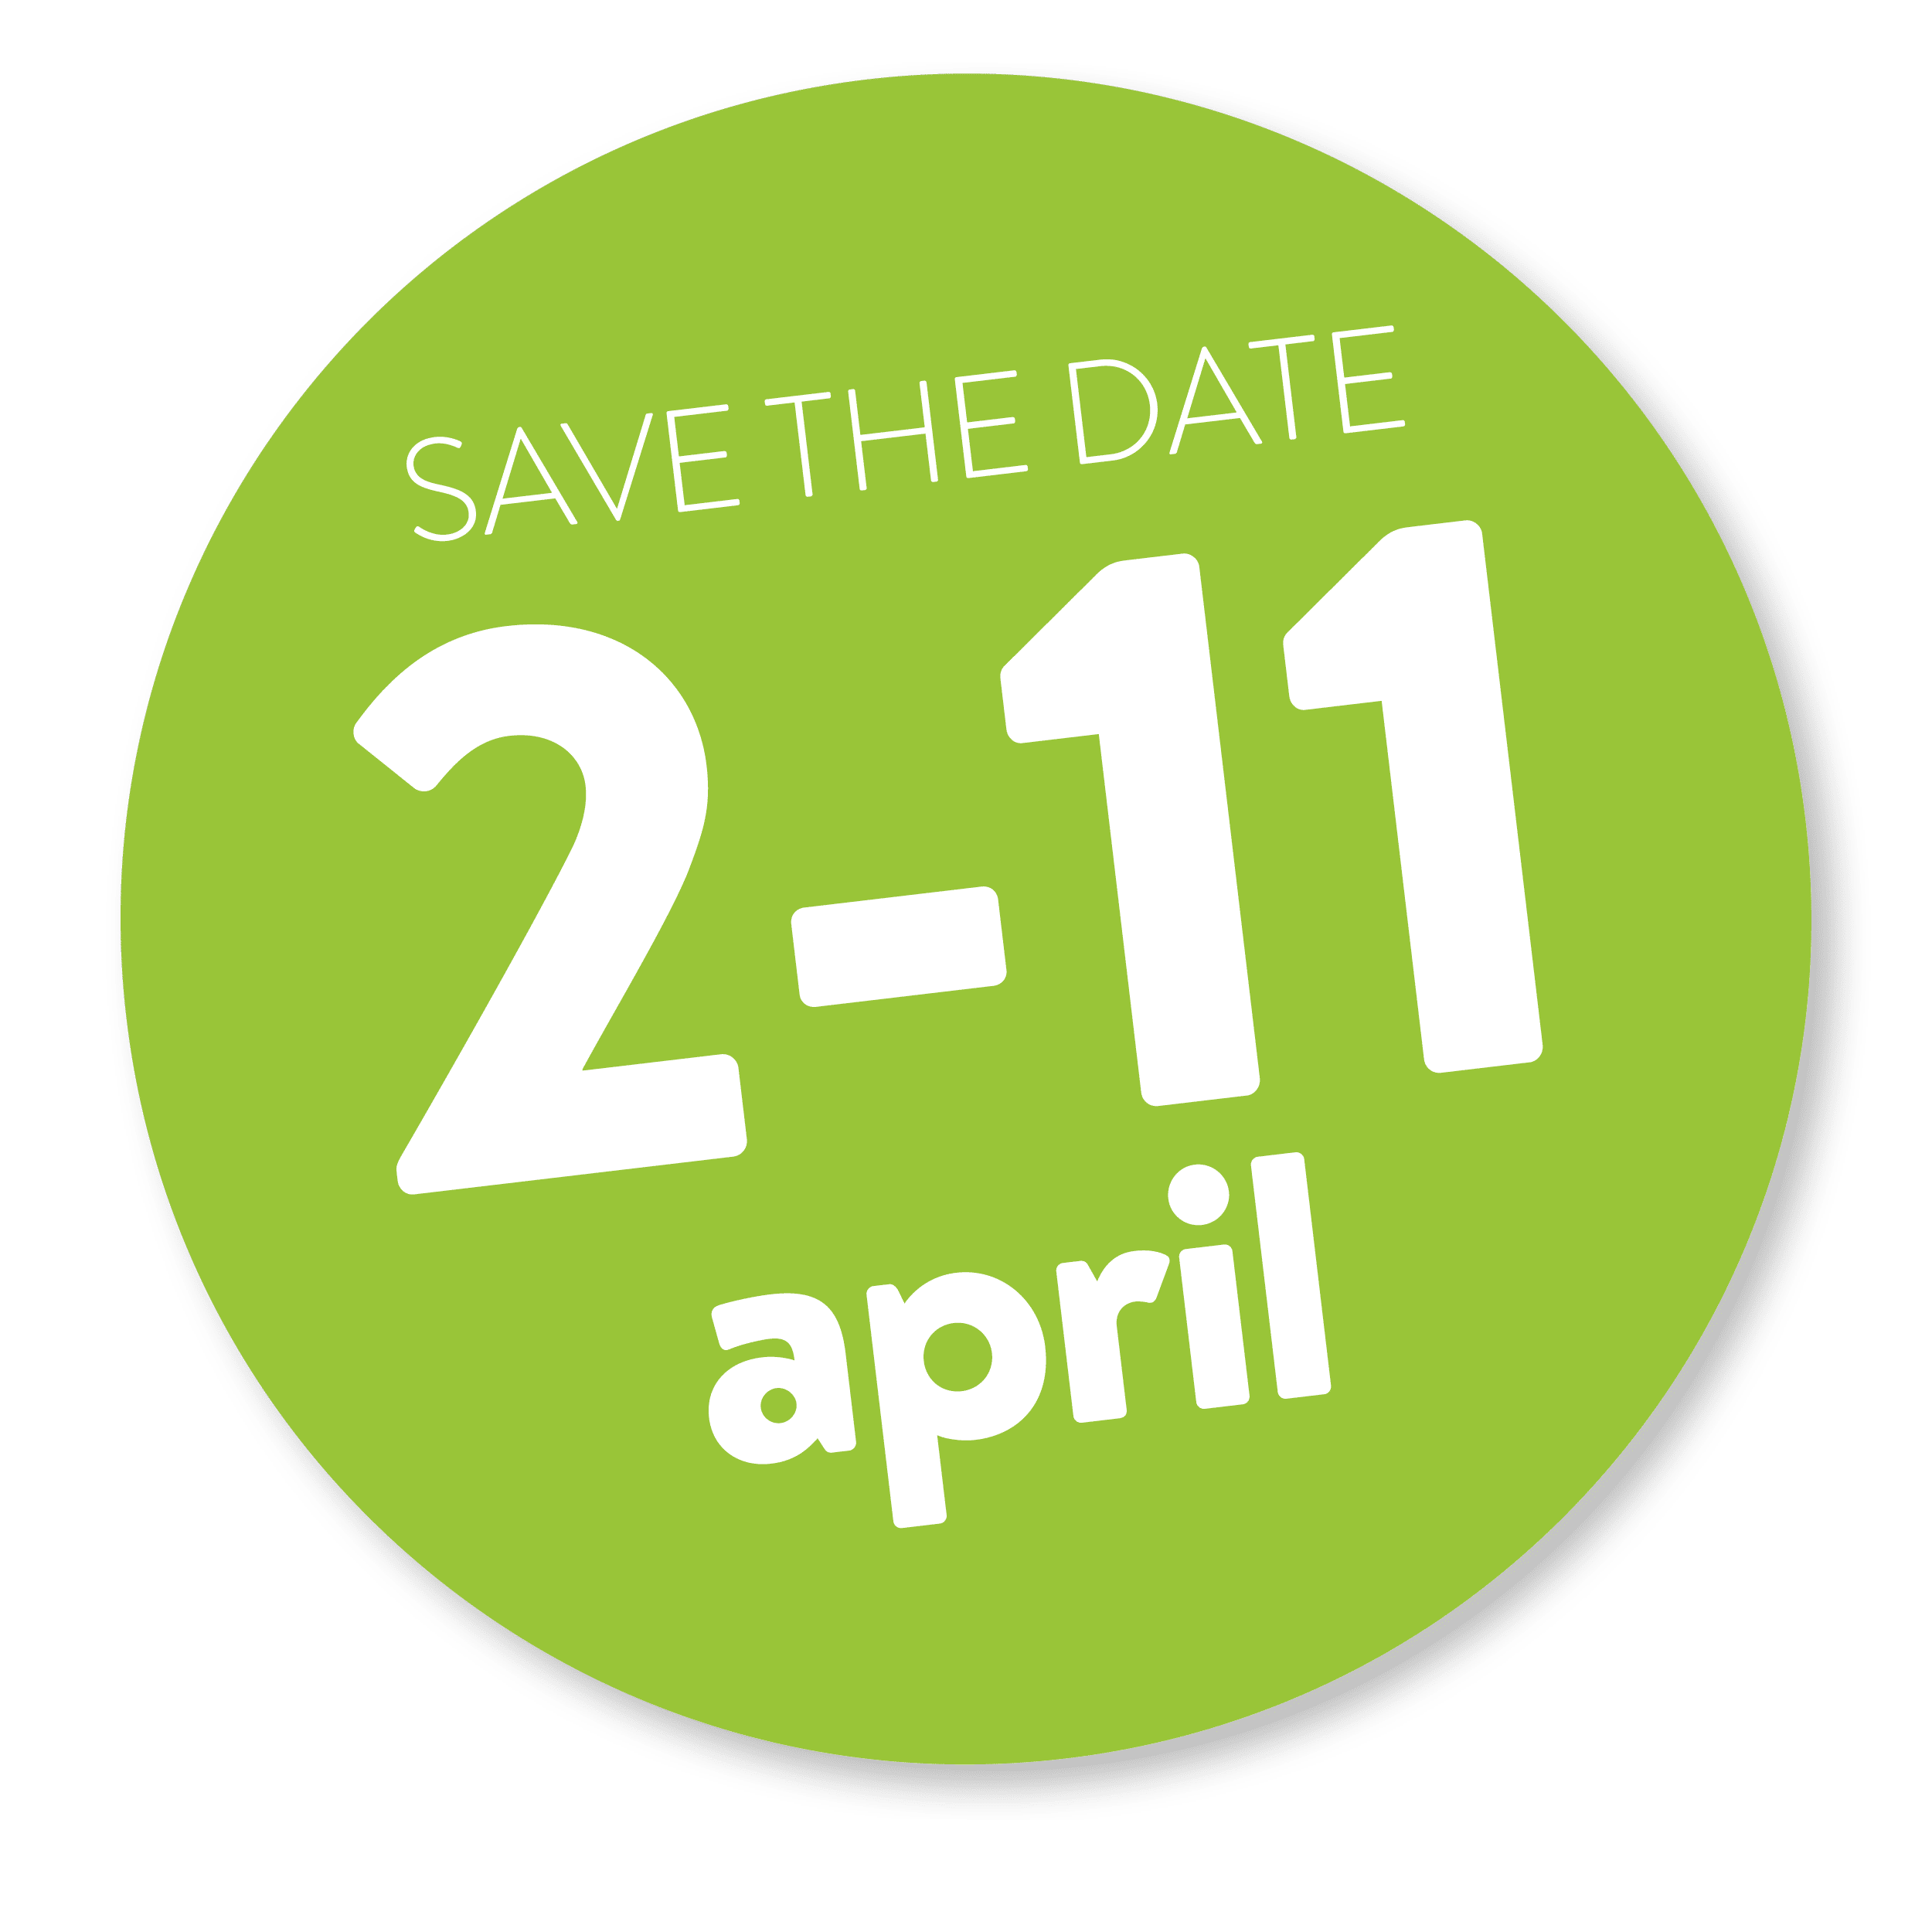 save the date 2-11 april